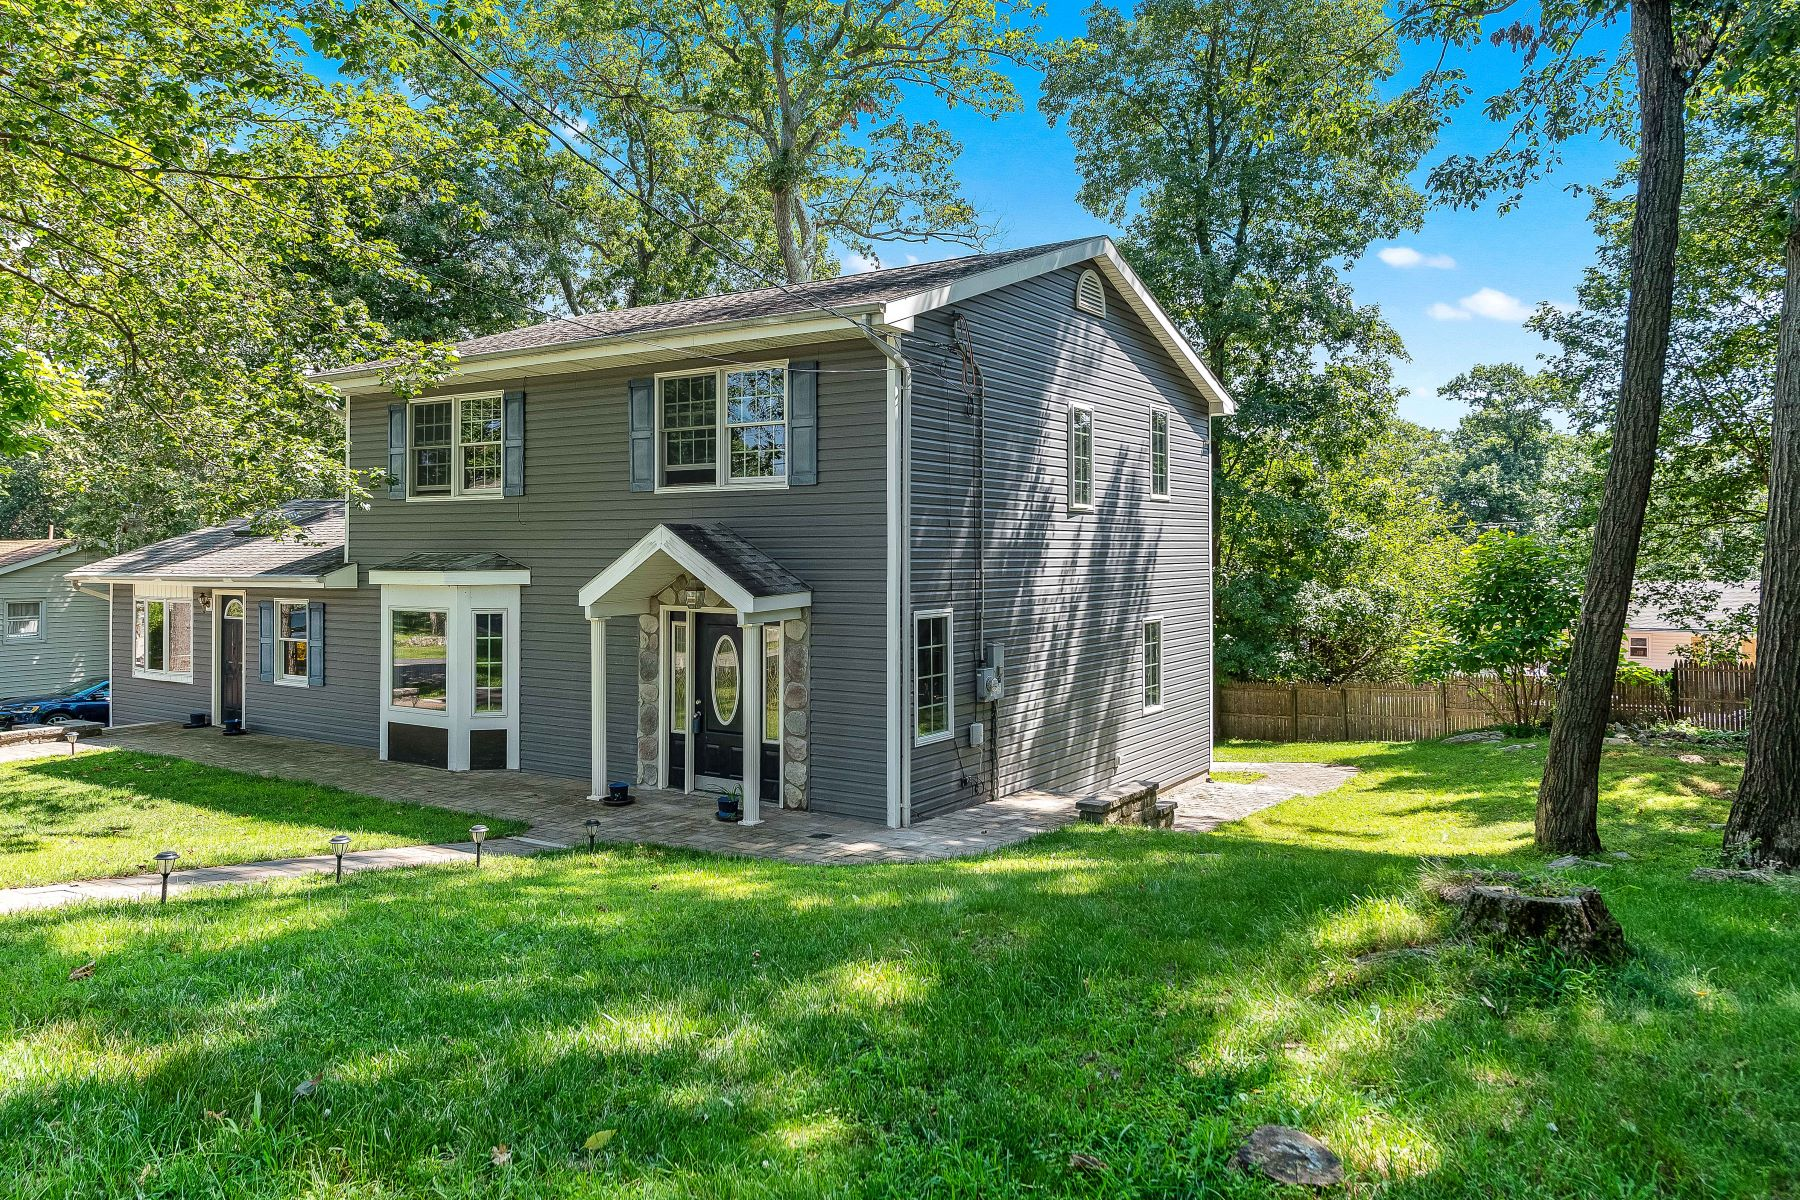 Single Family Homes for Active at Turnkey Colonial 153 Rollins Trail Hopatcong, New Jersey 07843 United States